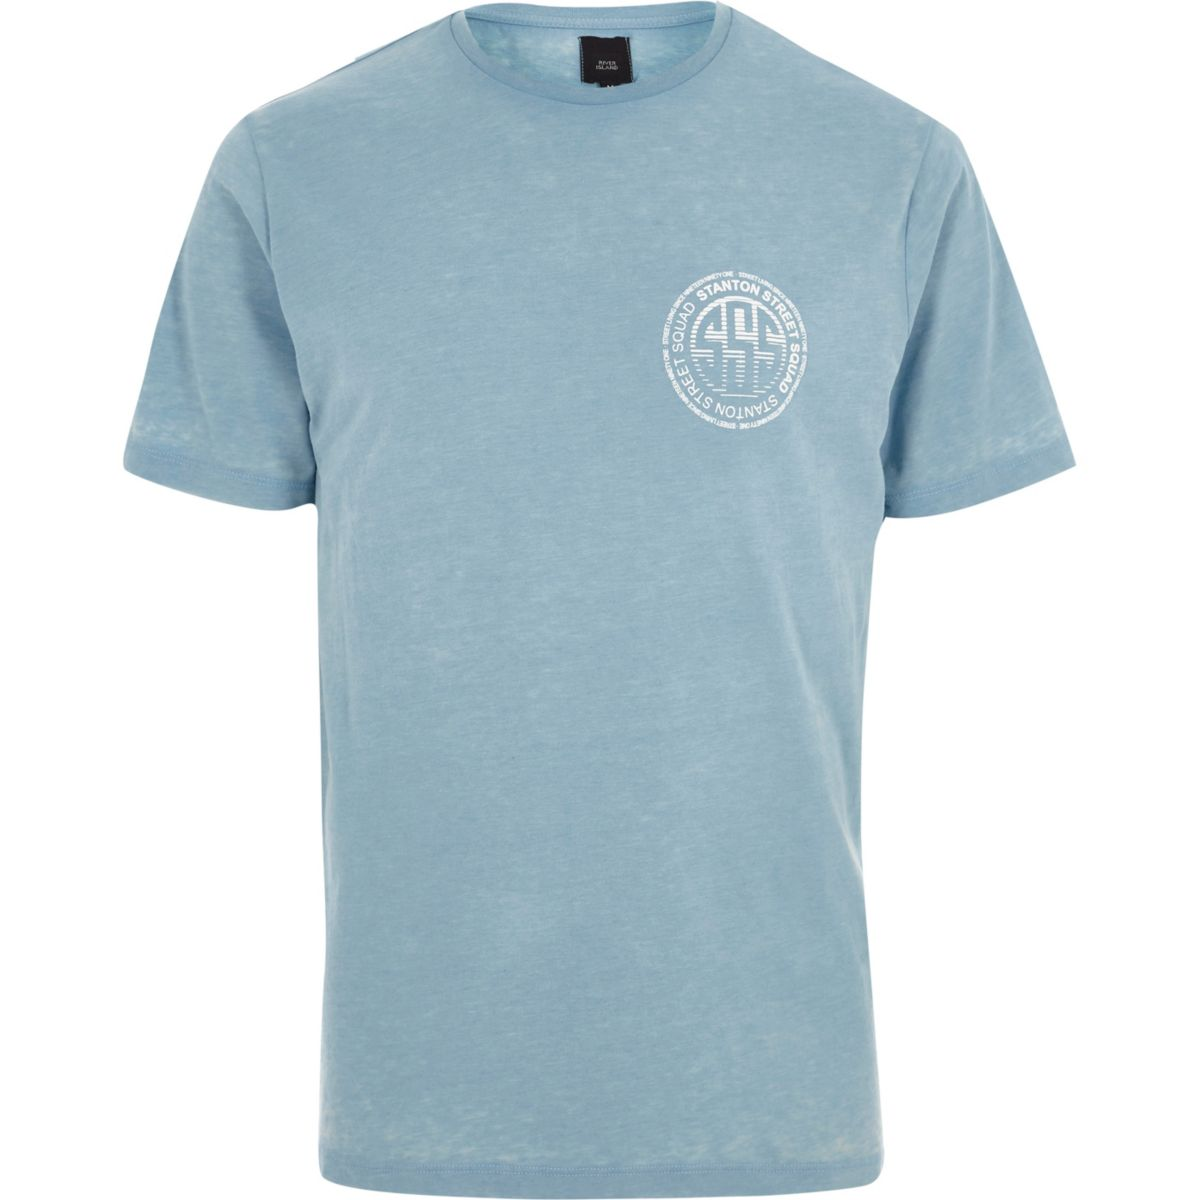 Blue burnout 'Stanton squad' print T-shirt